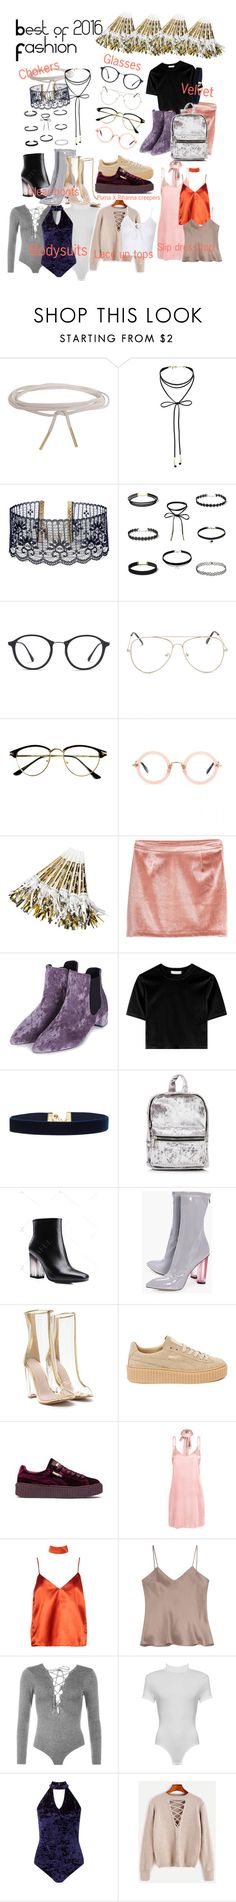 """""""Best of 2016: fashion"""" by darling-ange1 ❤ liked on Polyvore featuring Humble Chic, Miss Selfridge, Vanessa Mooney, Ray-Ban, Miu Miu, Topshop, Boohoo, Puma, WithChic and Etro"""